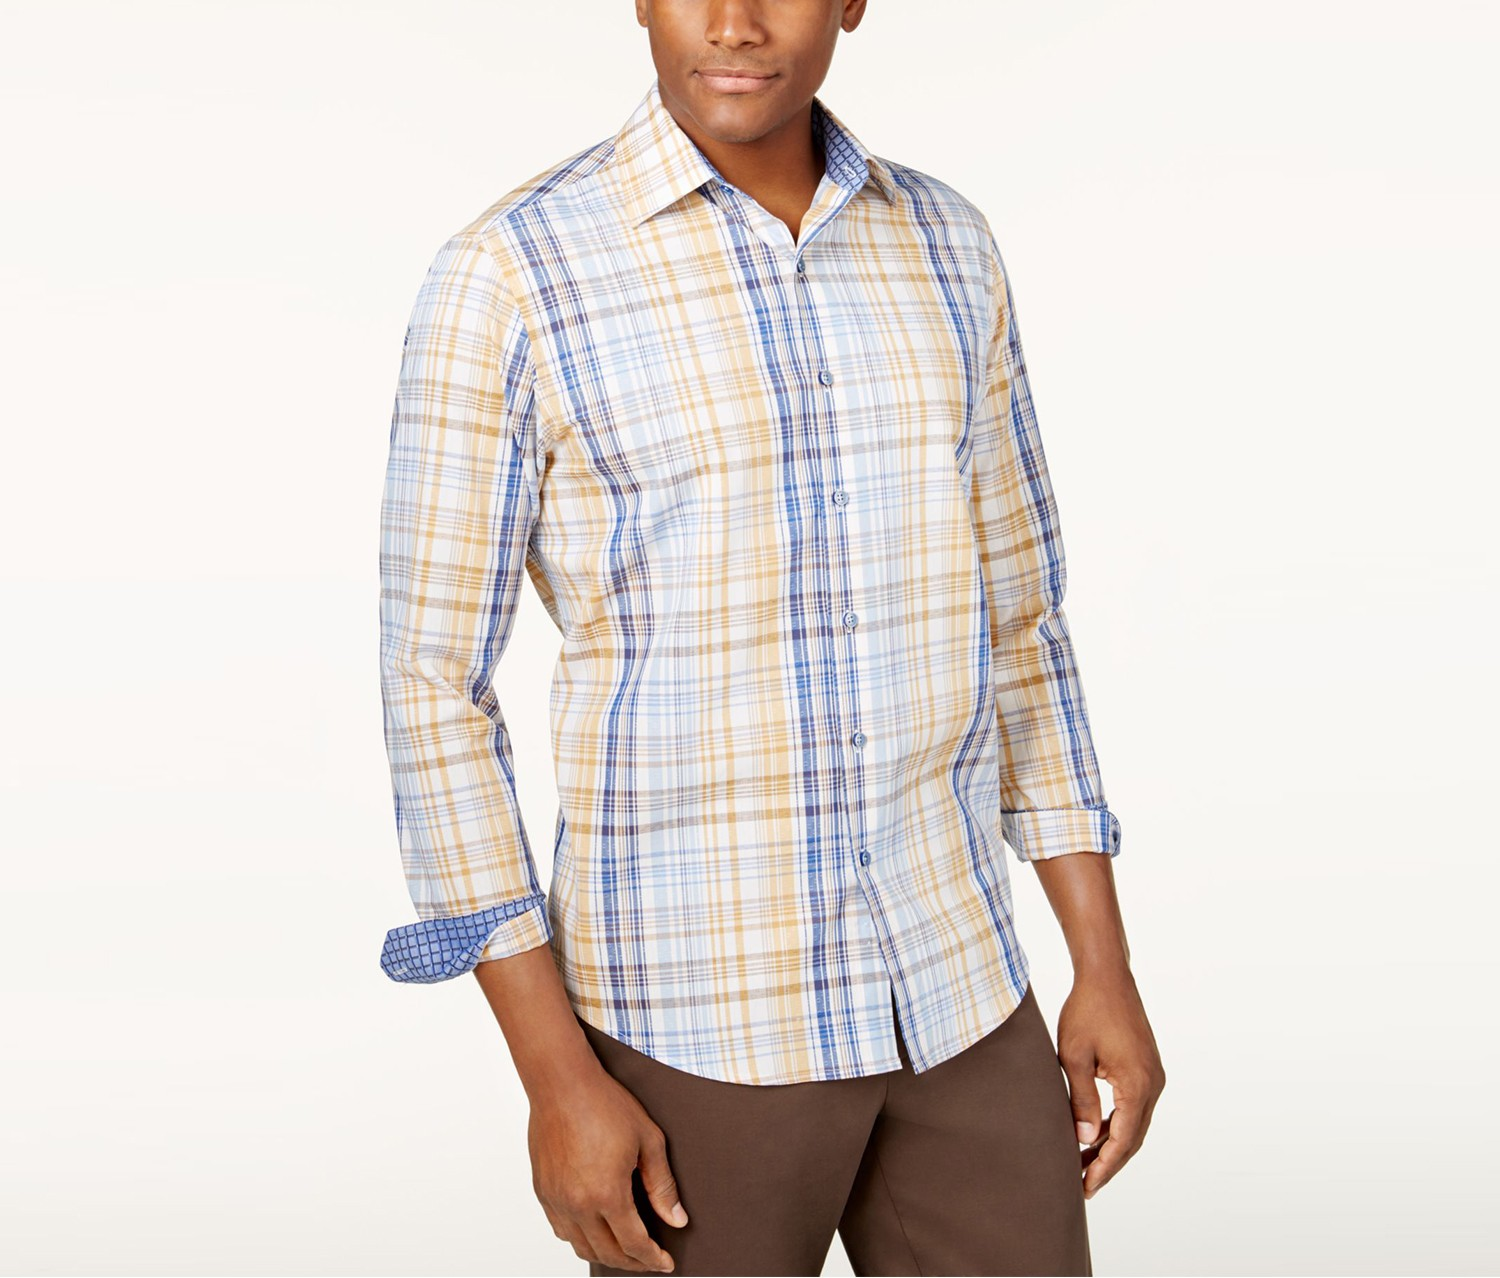 Minuto Rustic Plaid Long Sleeves Shirt, Birch Beige Combo